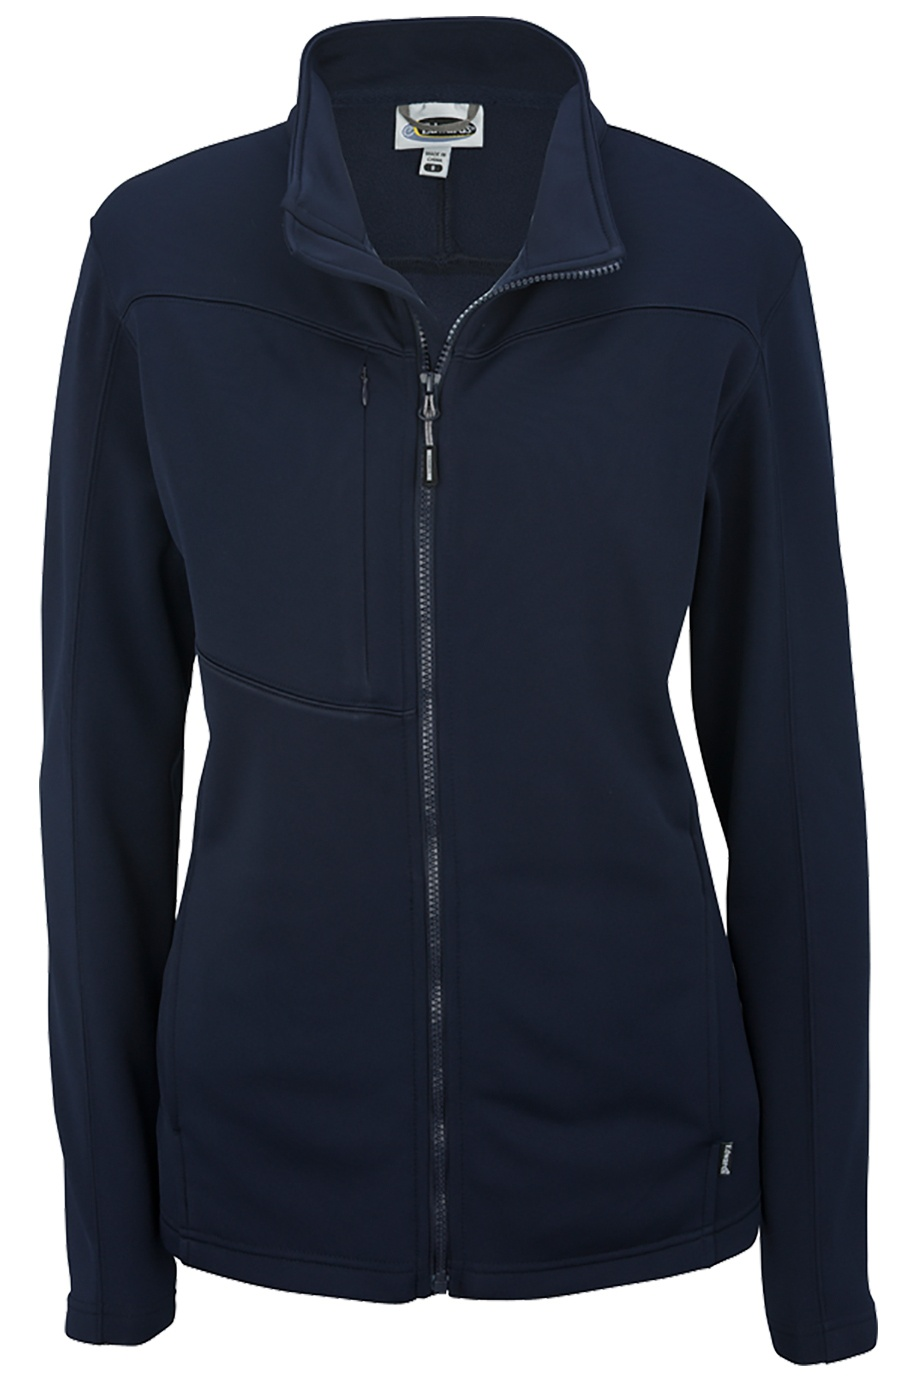 'Edwards 6440 Ladies' Performance Tek Jacket'